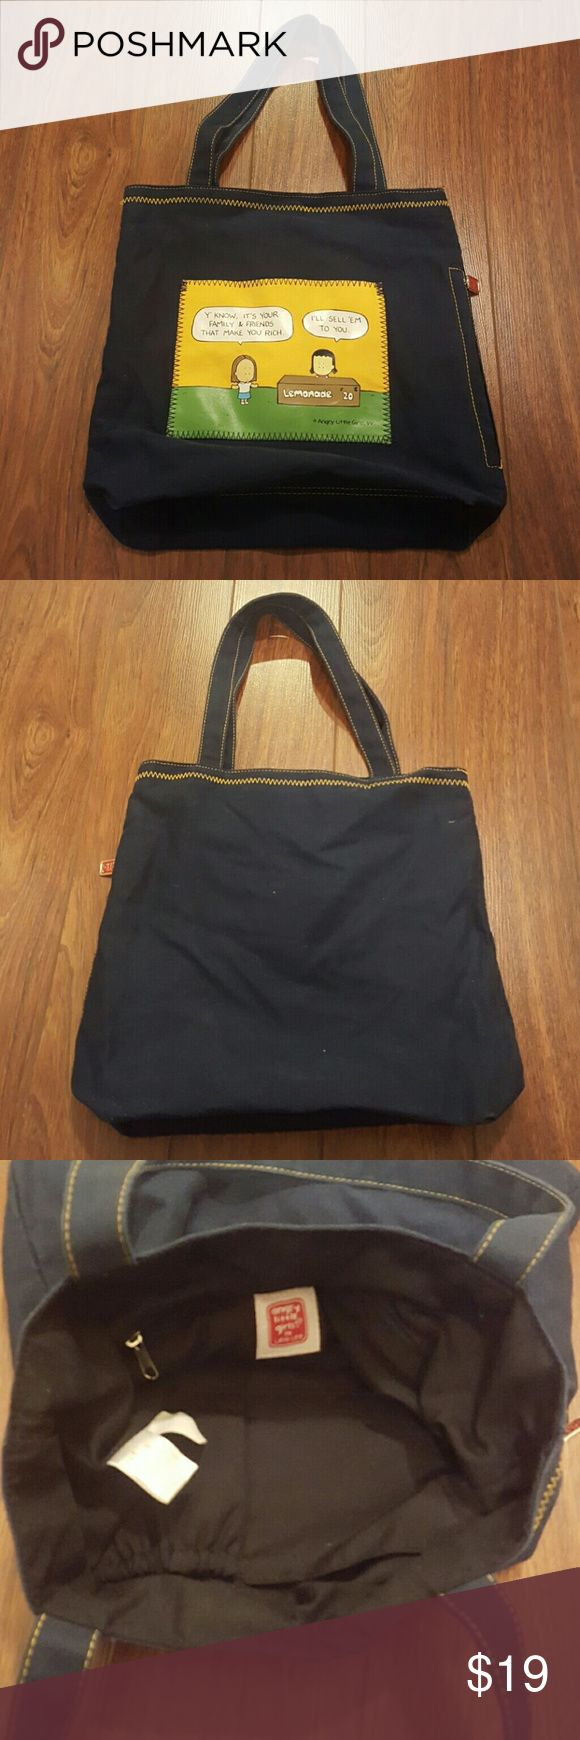 "Angry Little Girls Tote Navy blue eith yellow contrast stitching Open tote 1 exterior open pocket on front  1 exterior zippered pocket on side 1 interior zippered pocket 2 interior open pockets  Height: 13.5"" Width: 13.5"" Depth: 4"" Angry Little Girls Bags Totes"